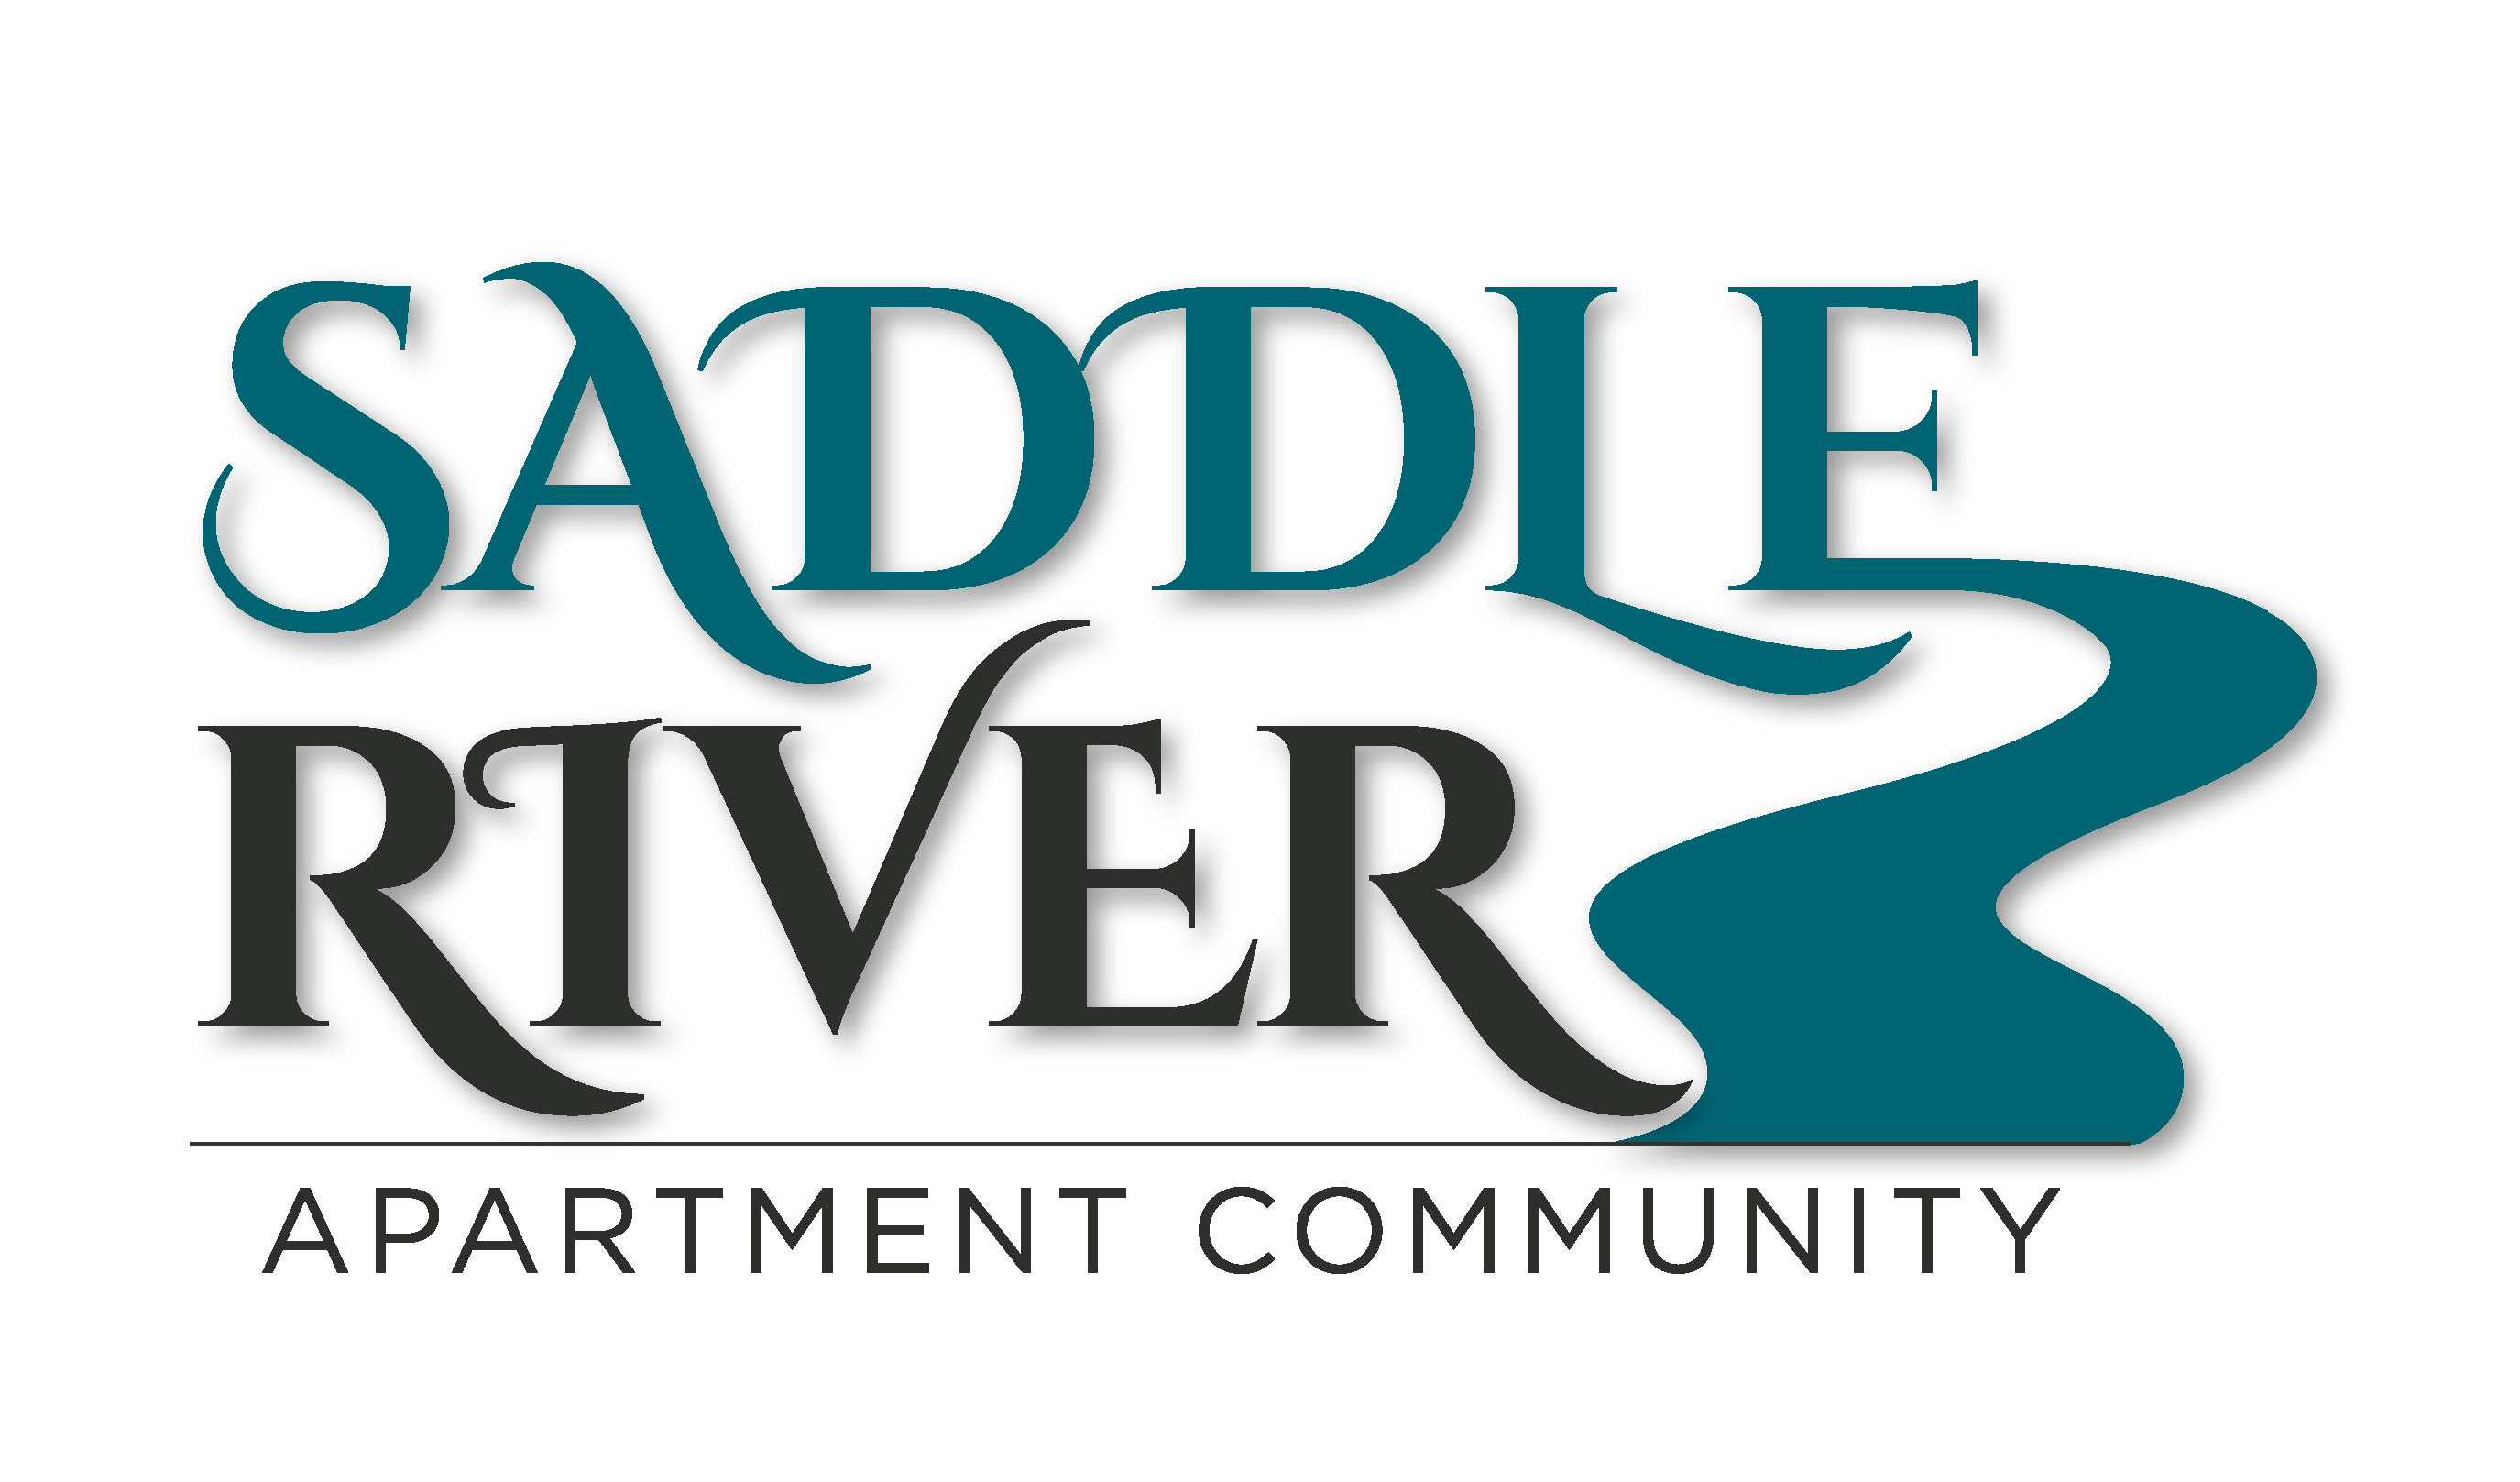 Saddle River Apartments Logo